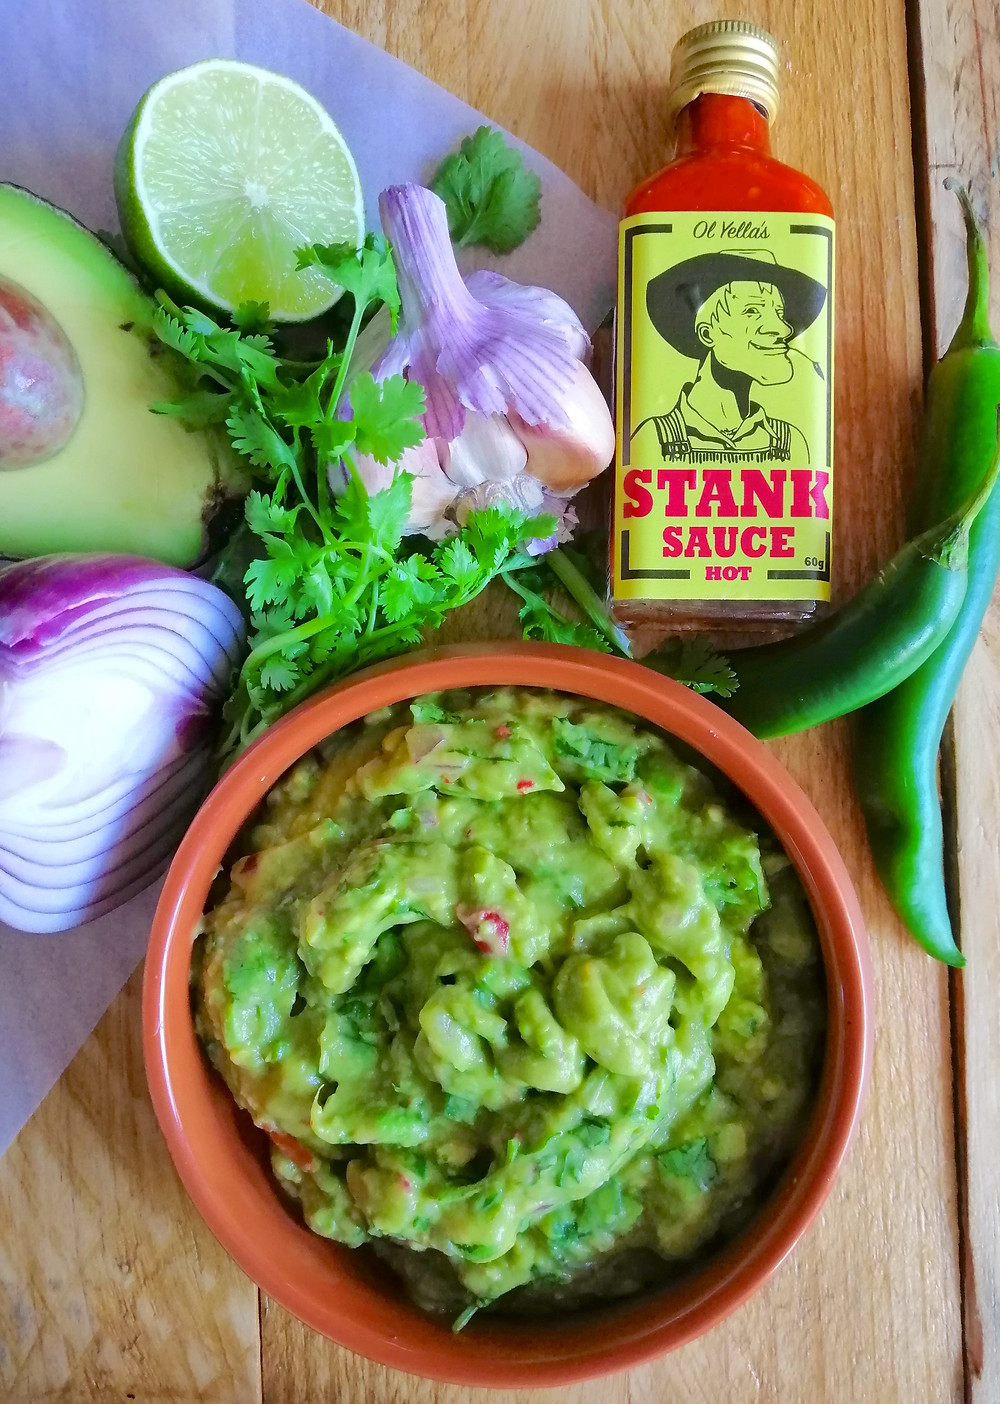 Fresh guacamole with Stank Sauce, great and easy summer recipe